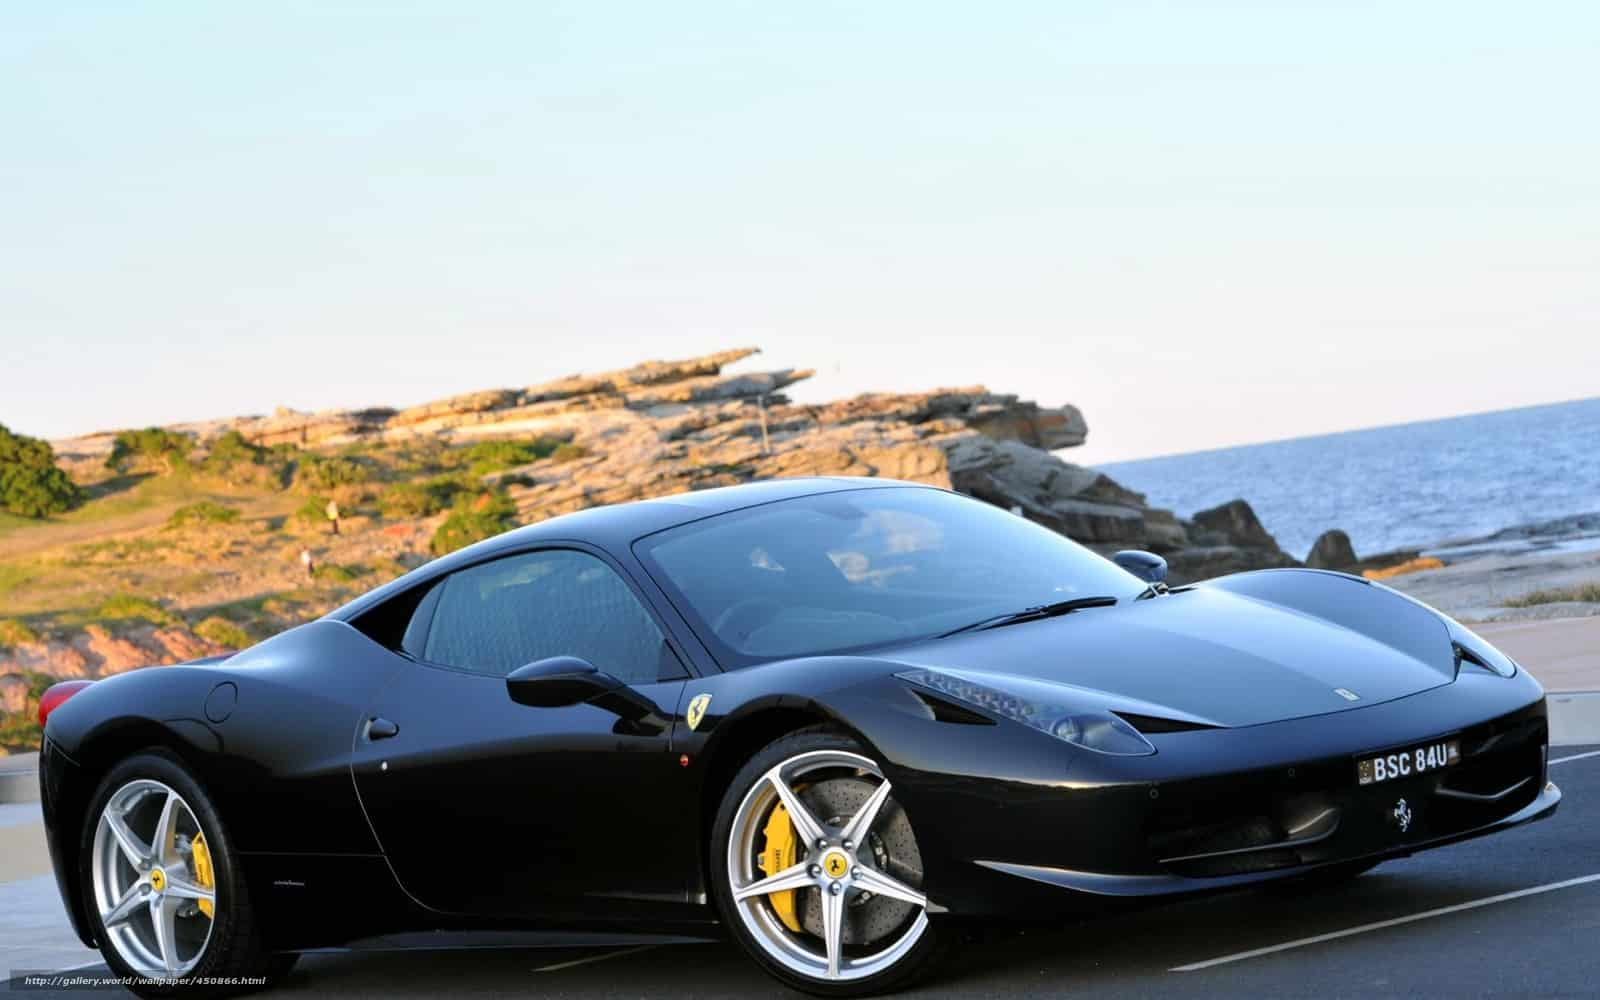 rent a ferrari in jesolo one of the most beautiful beaches in italy italy luxury car hire. Black Bedroom Furniture Sets. Home Design Ideas